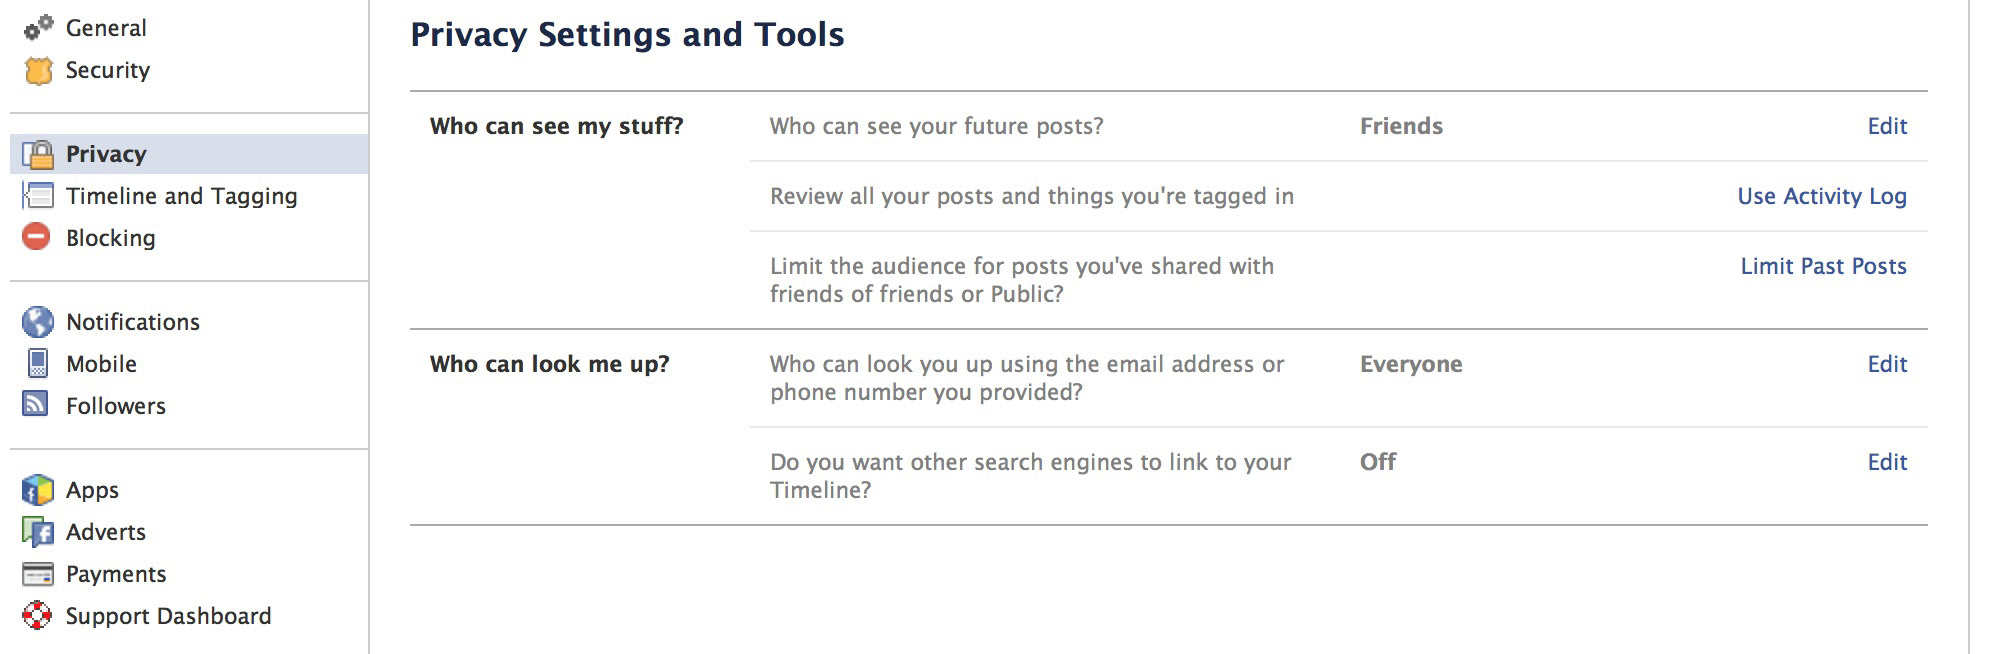 Finally, under Do you want other search engines to link to your timeline?